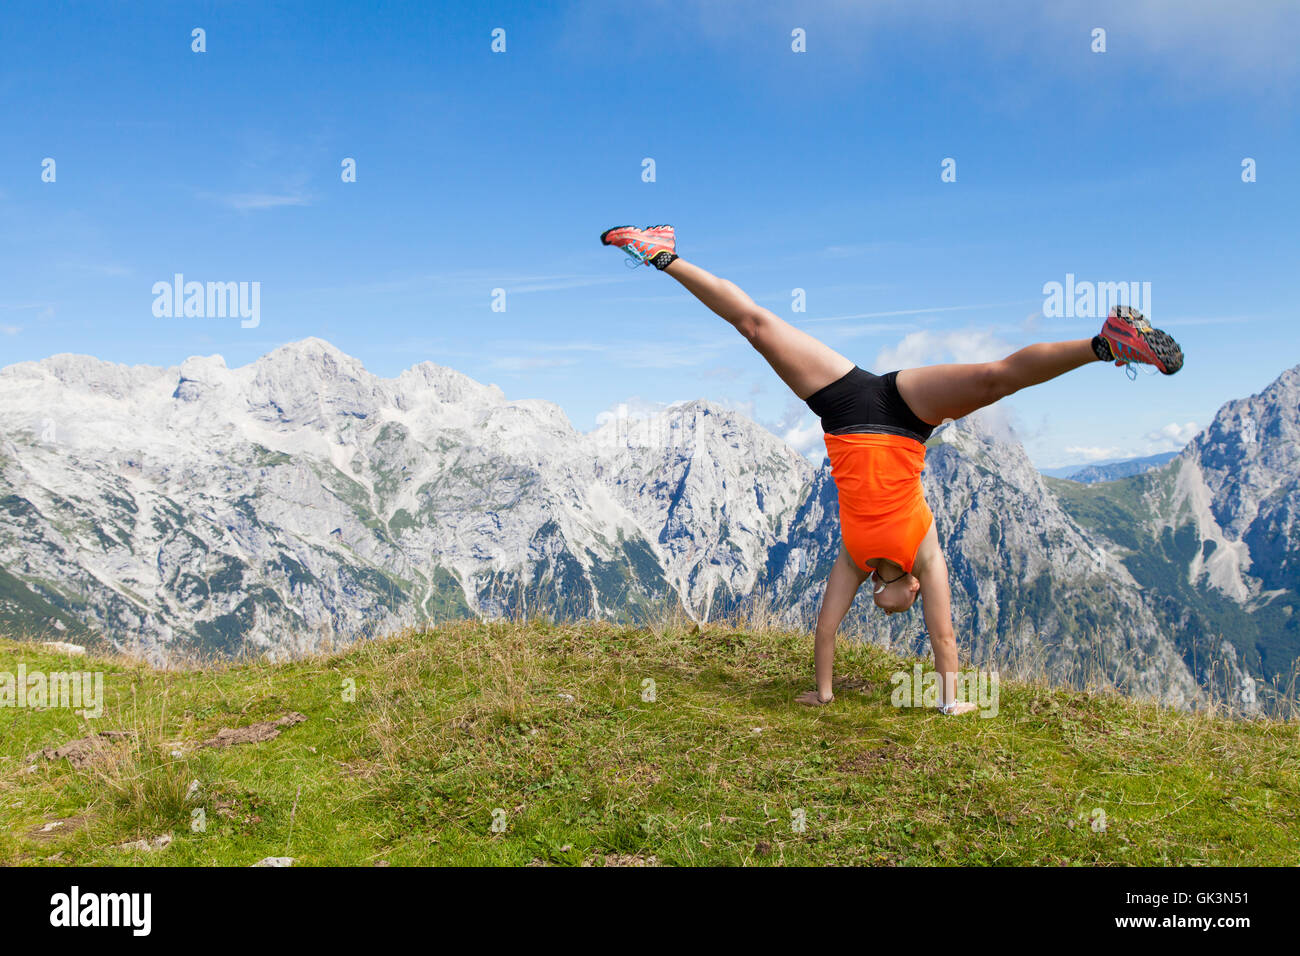 Pretty women joyfully jumping and performing cartwheel - Stock Image